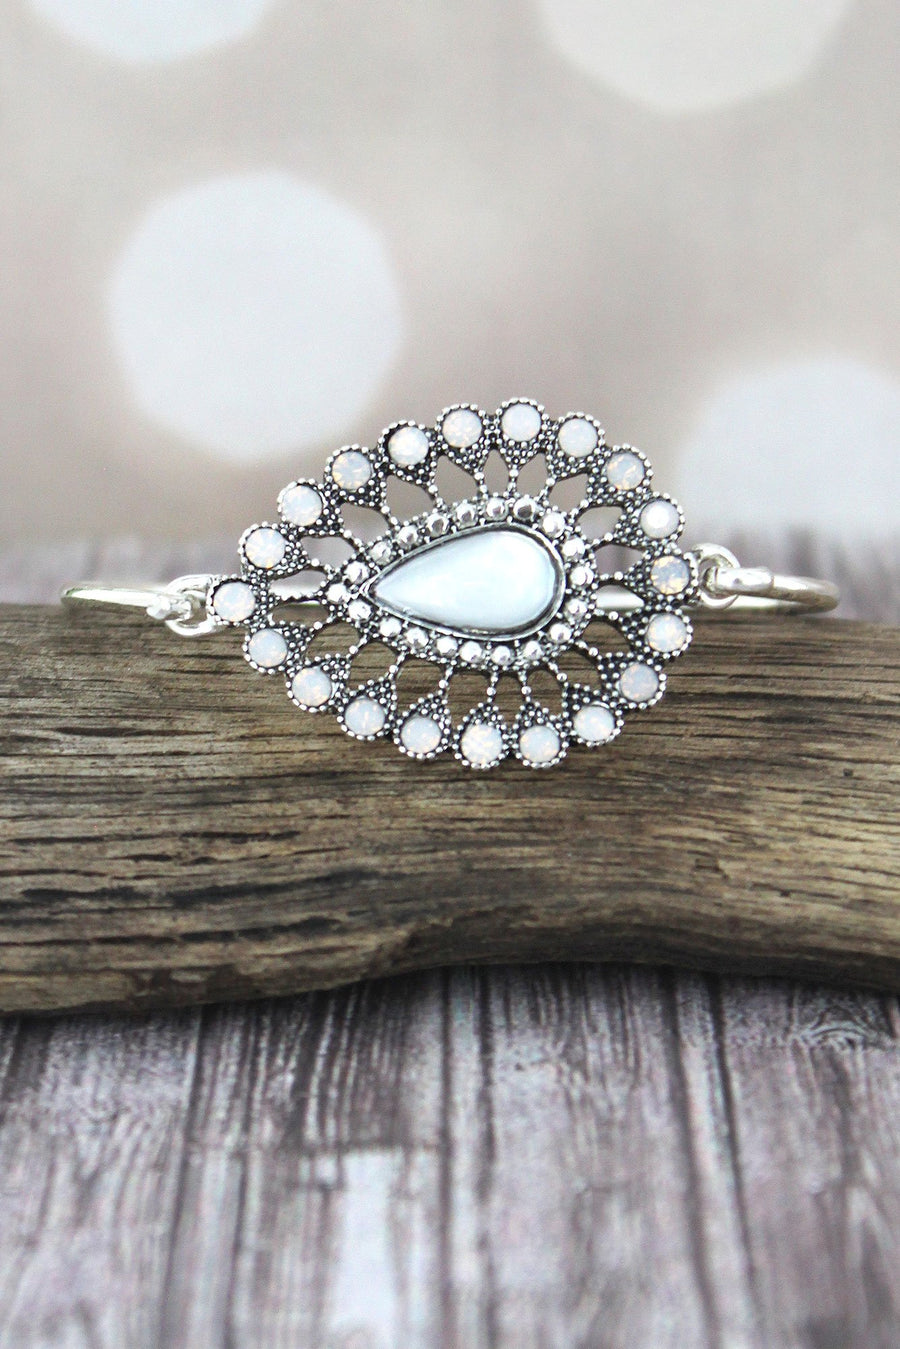 Mother of Pearl and Crystal Accented Silvertone Teardrop Bracelet